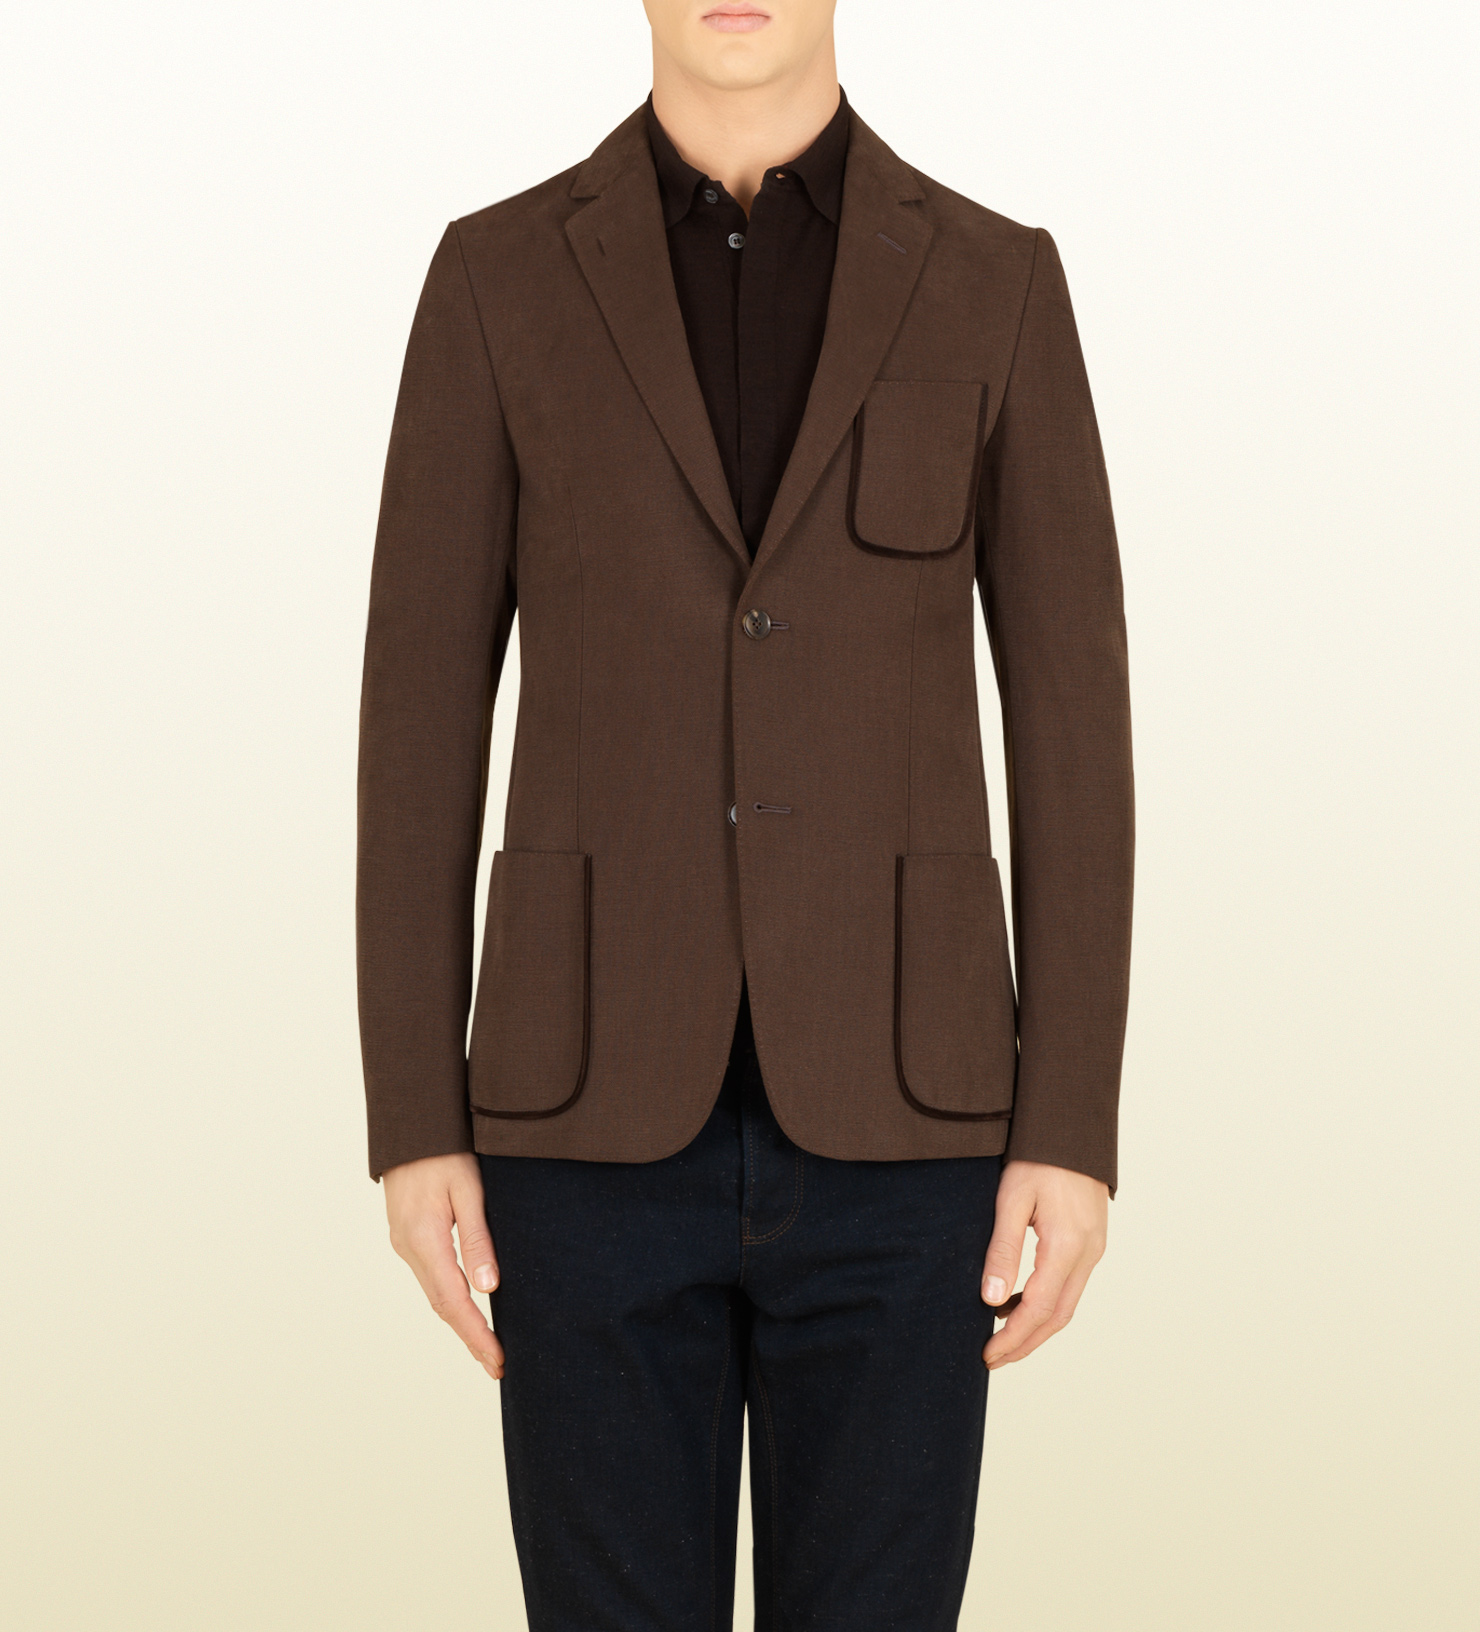 Gucci Canvas Cotton Cardigan Jacket in Brown for Men | Lyst